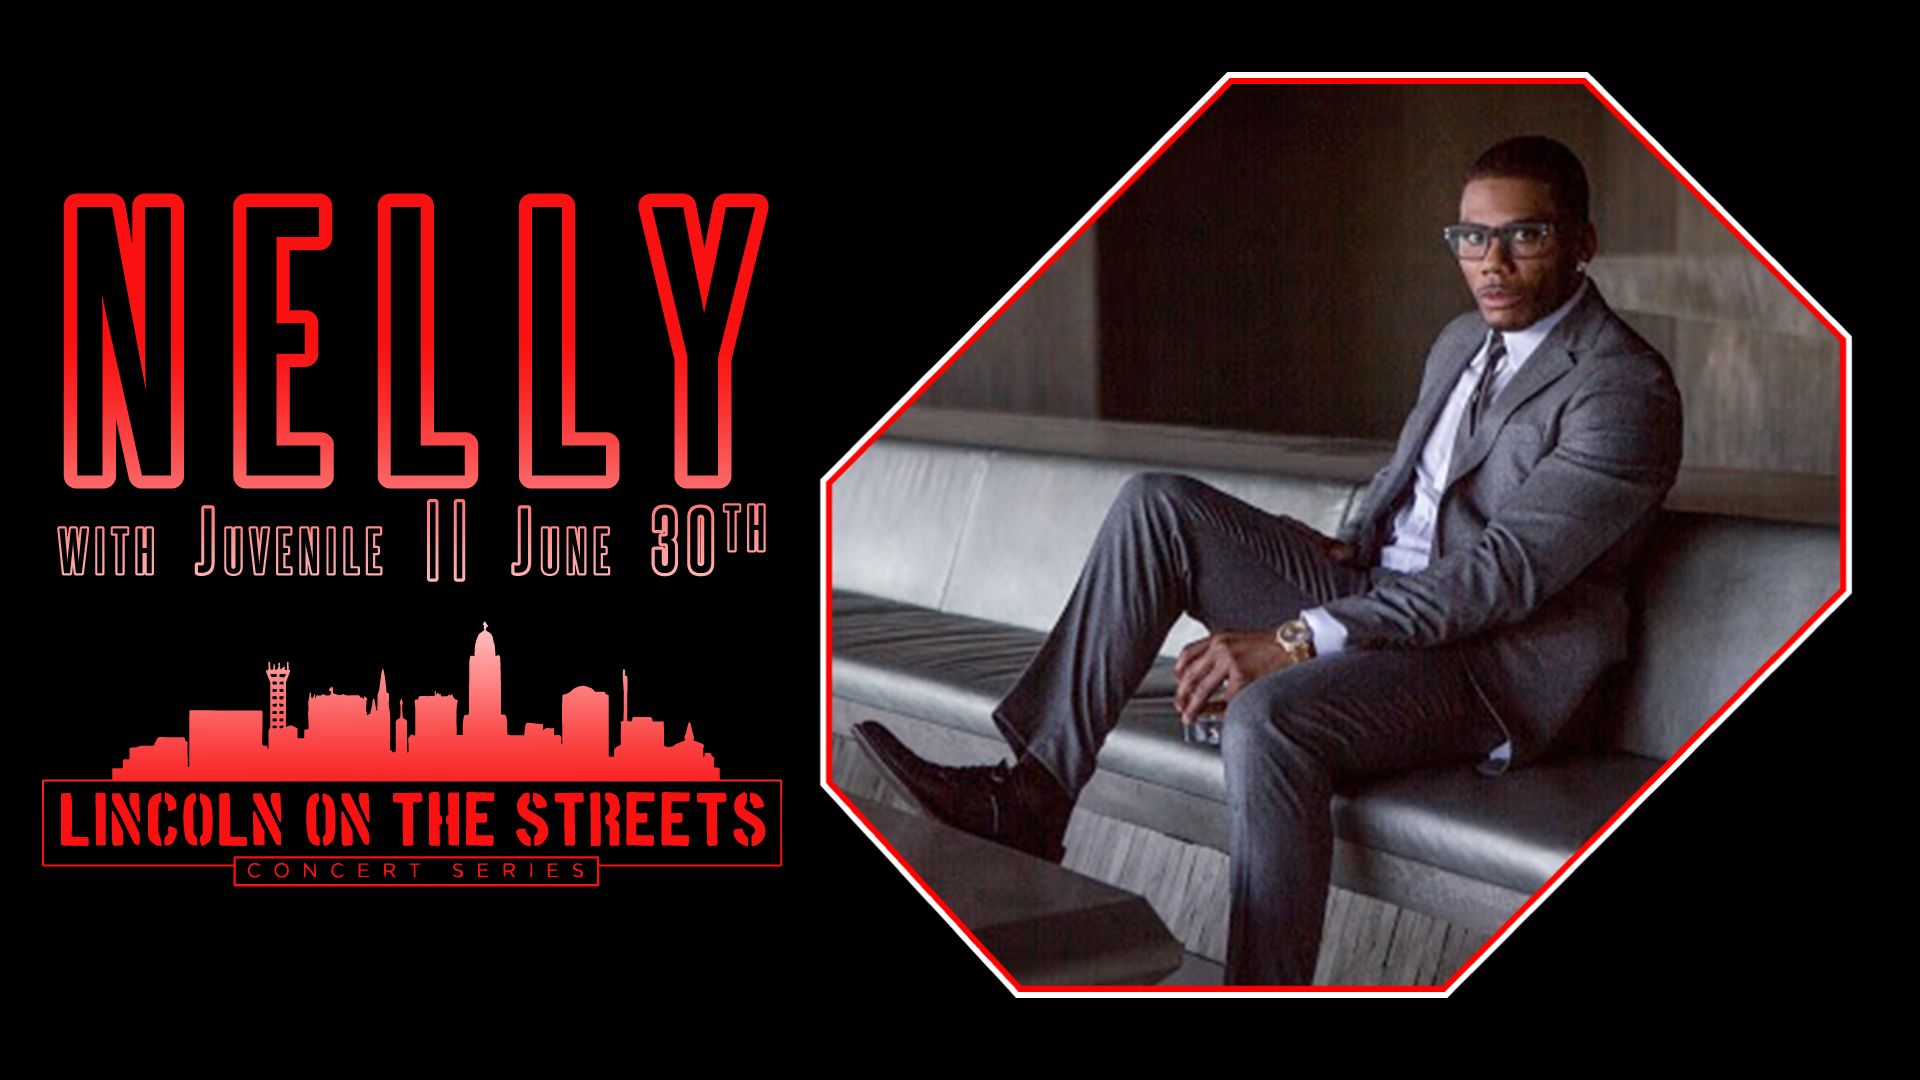 Lincoln The Streets Concert Series with Nelly & Guest Juvenile